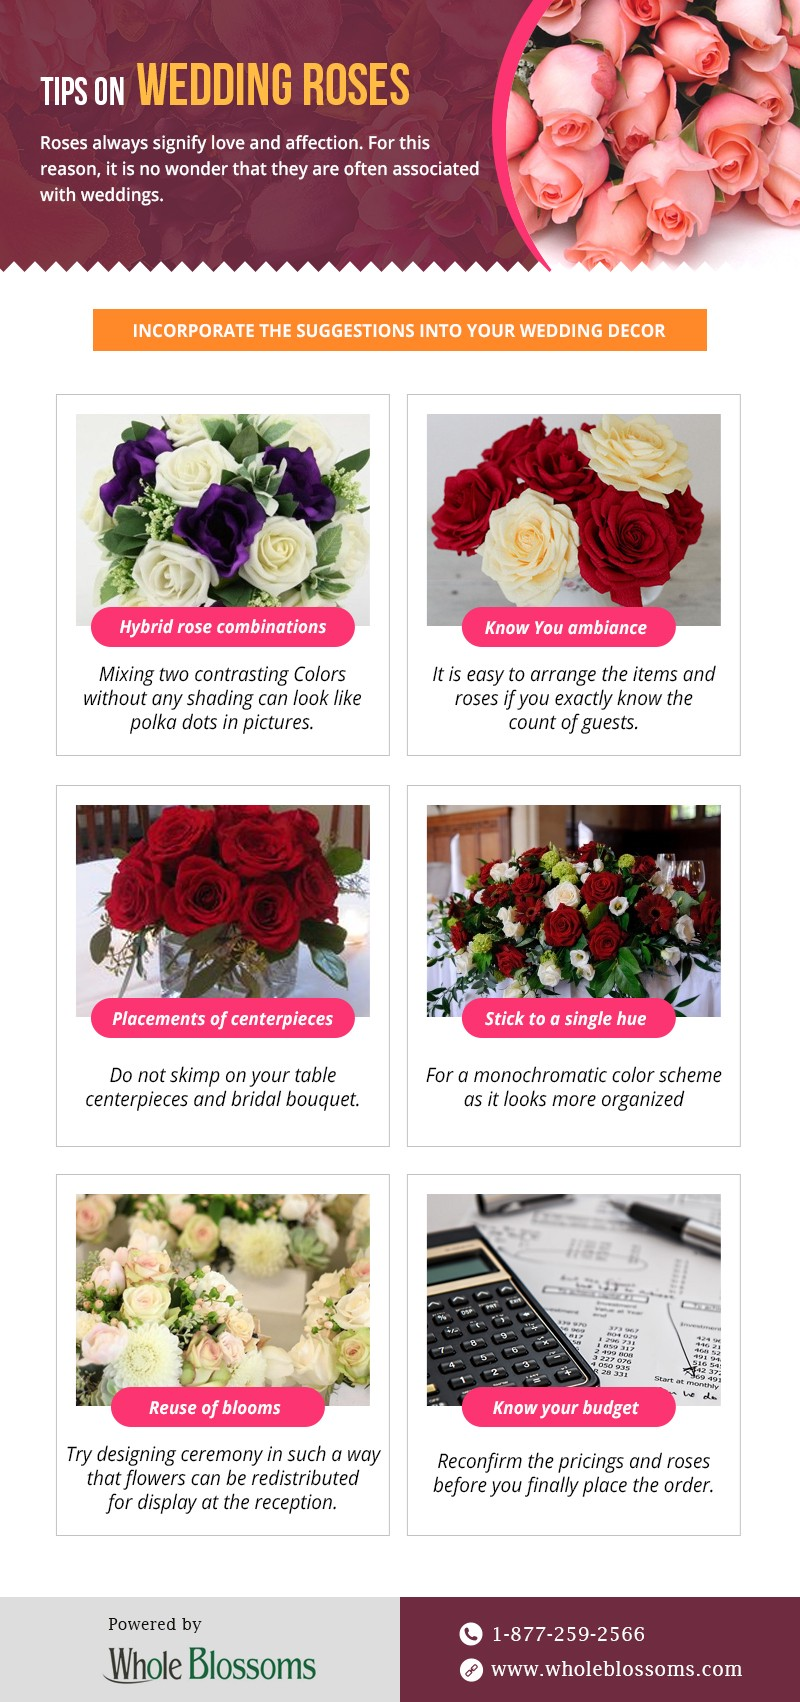 Order Wholesale Wedding Roses in Bulk – Whole Blossoms – Medium